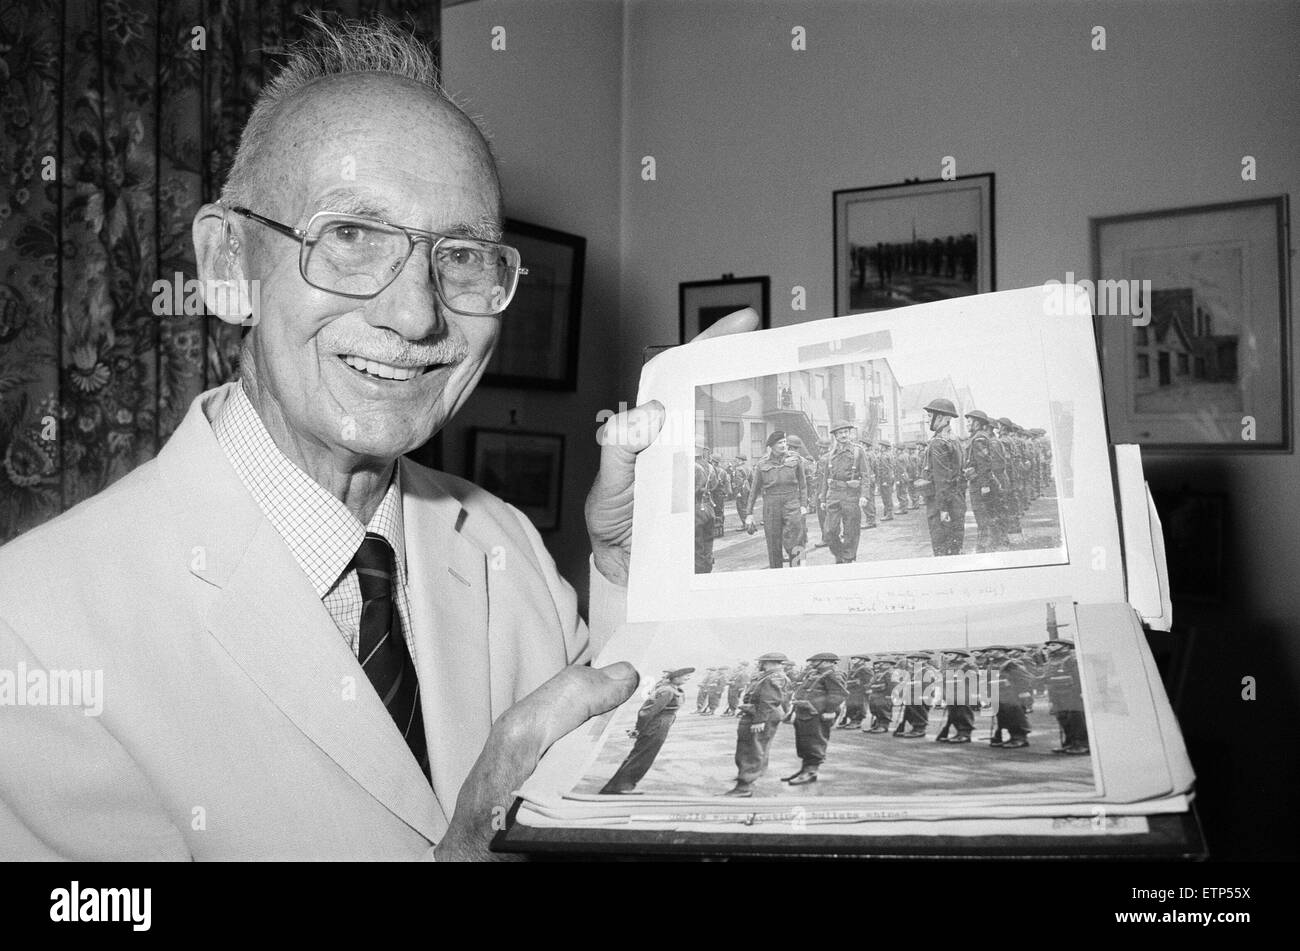 Norman Edwards, from Sutton Coldfield, aged 92. Former chairman and managing director of the Metropolitan Cammell - Stock Image